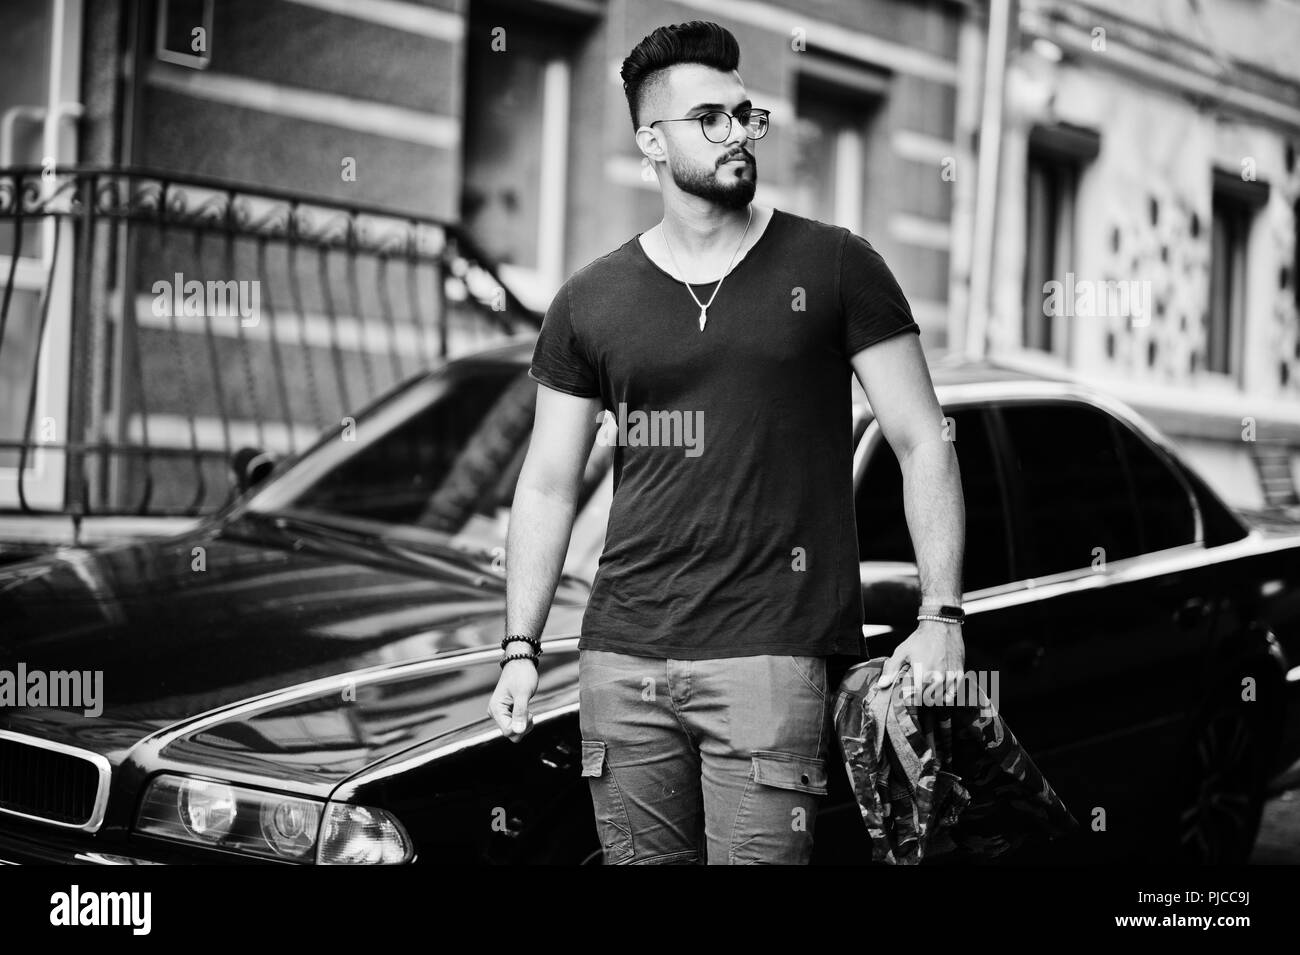 Awesome beautiful tall ararbian beard macho man in glasses and black t-shirt walking against business car. - Stock Image